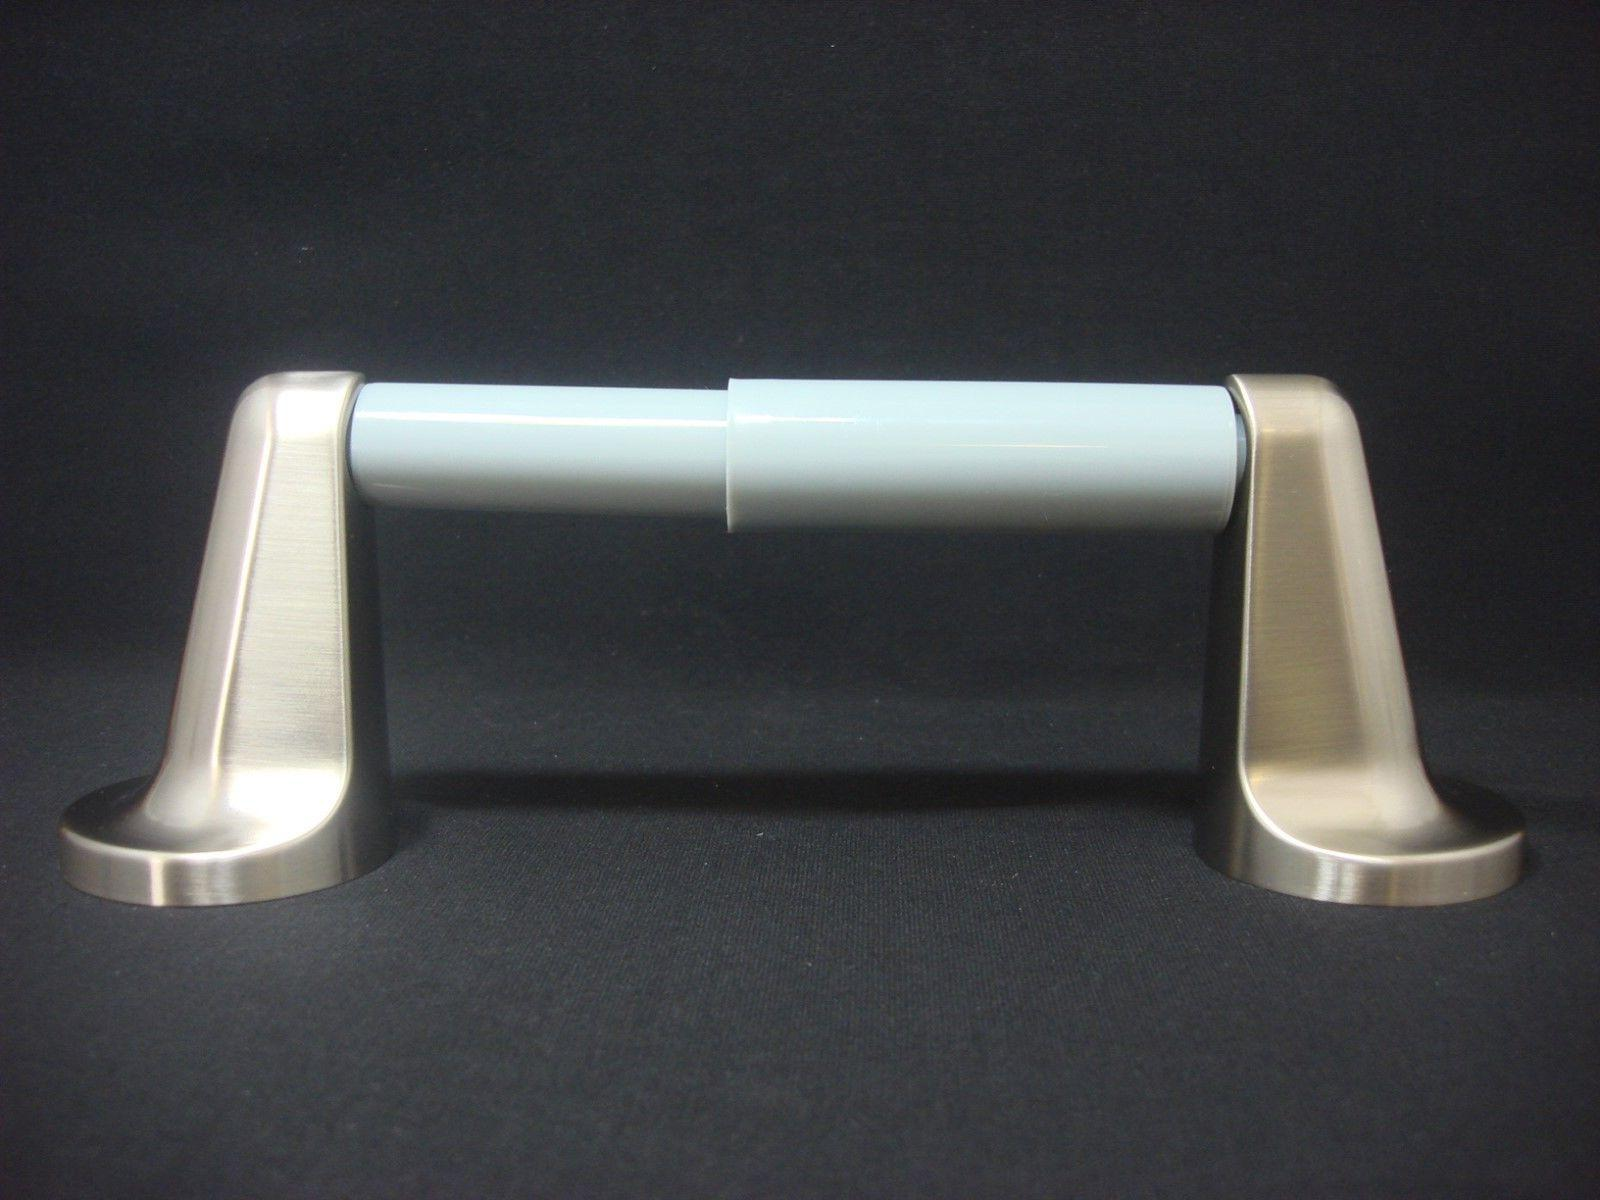 1 Hastra Toilet Paper Holder Satin Nickel With Gray Plastic